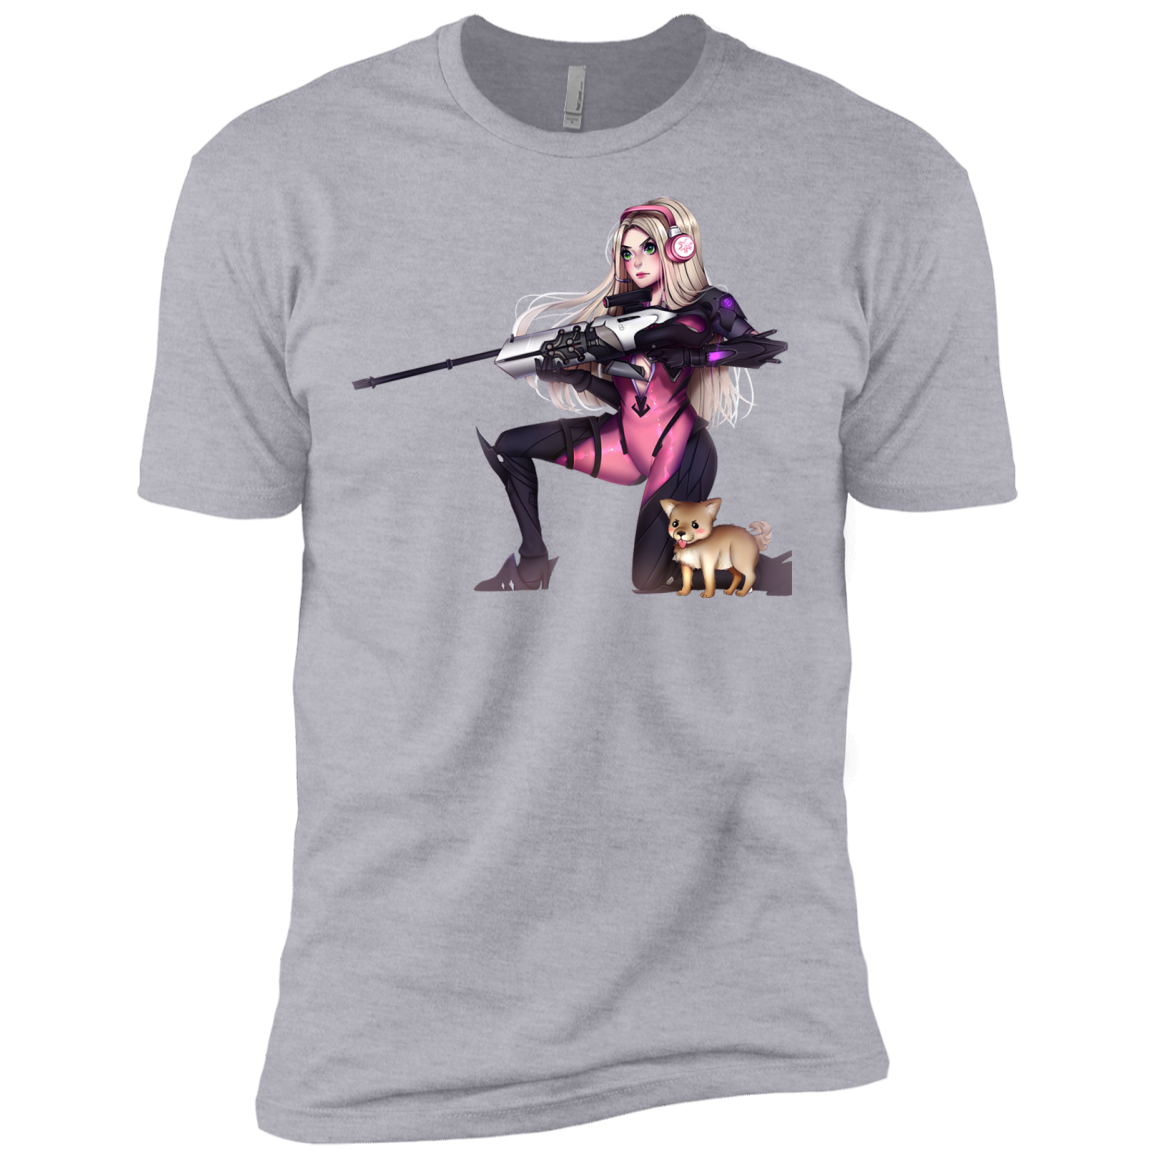 BarbieGirll & Charlie T-Shirt & Hoodie - The Sun Cat